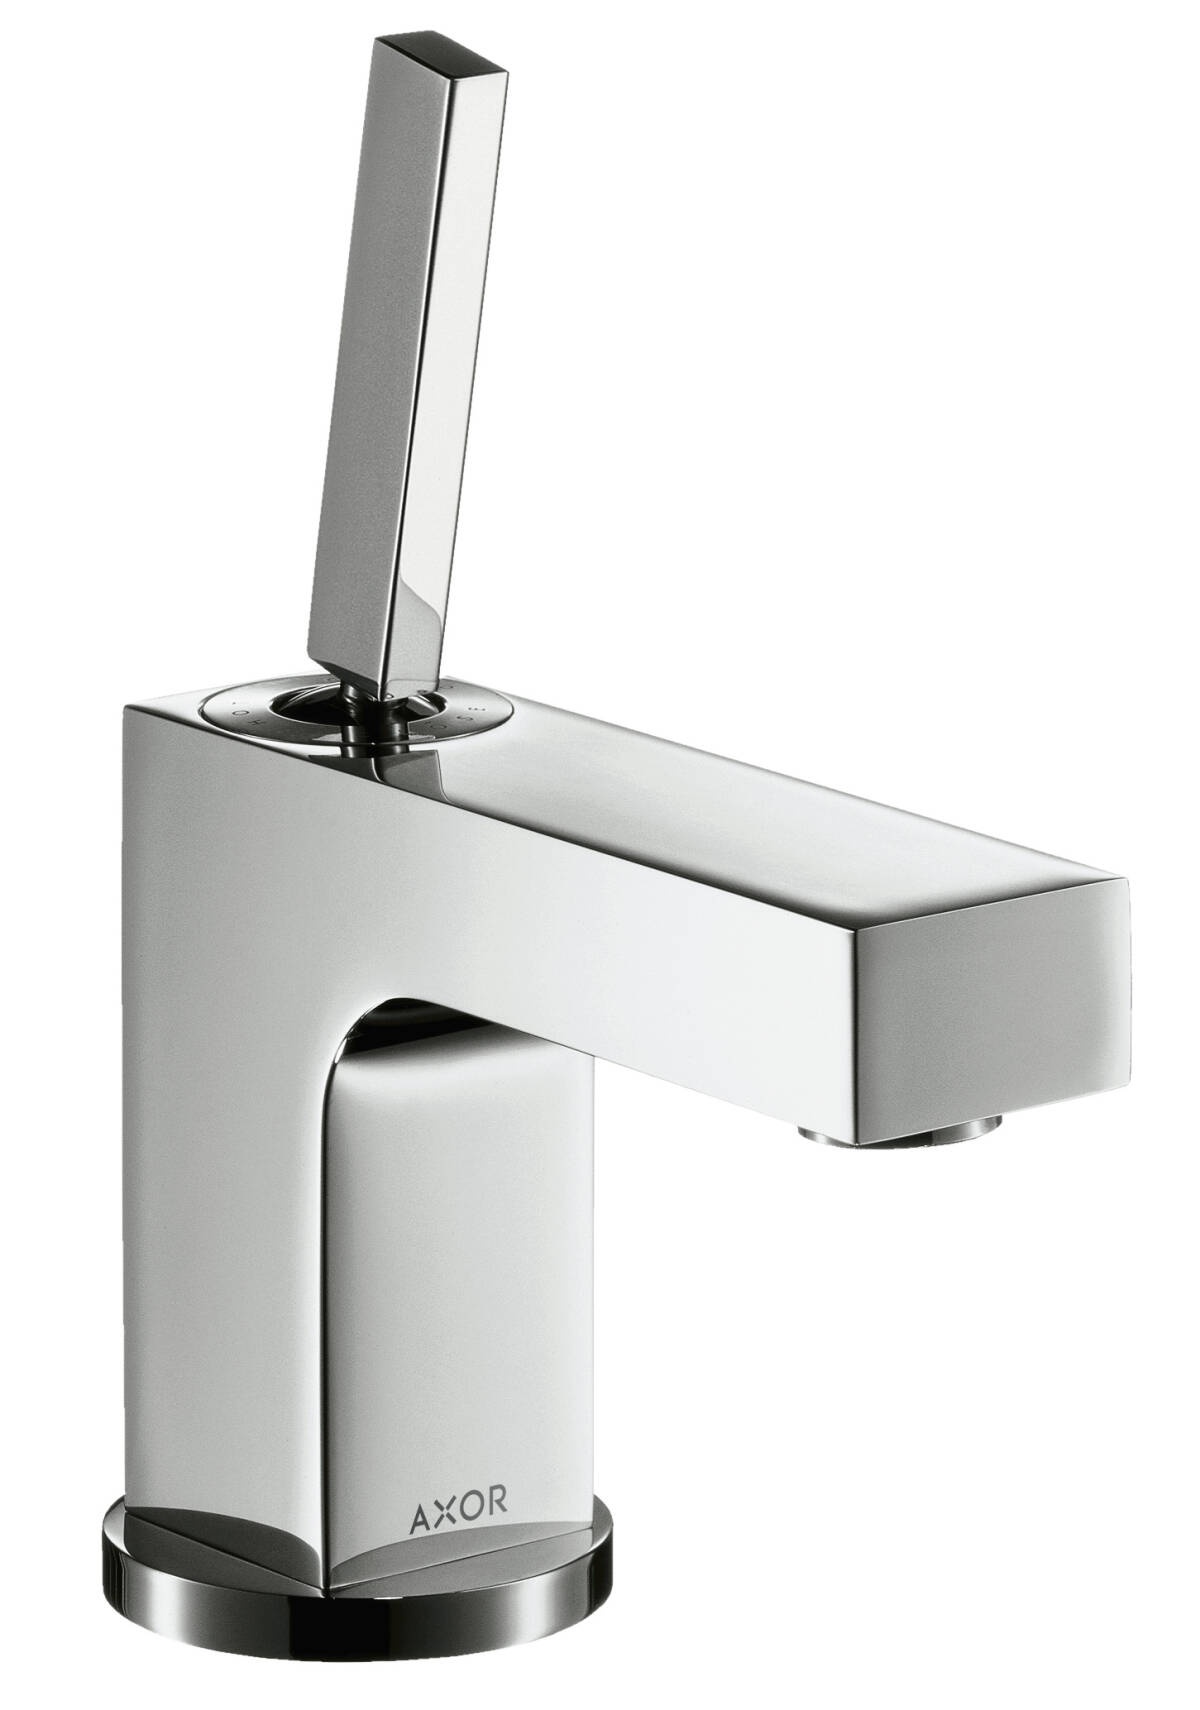 Single lever basin mixer 80 with pin handle for hand washbasins with pop-up waste set, Chrome, 39015000